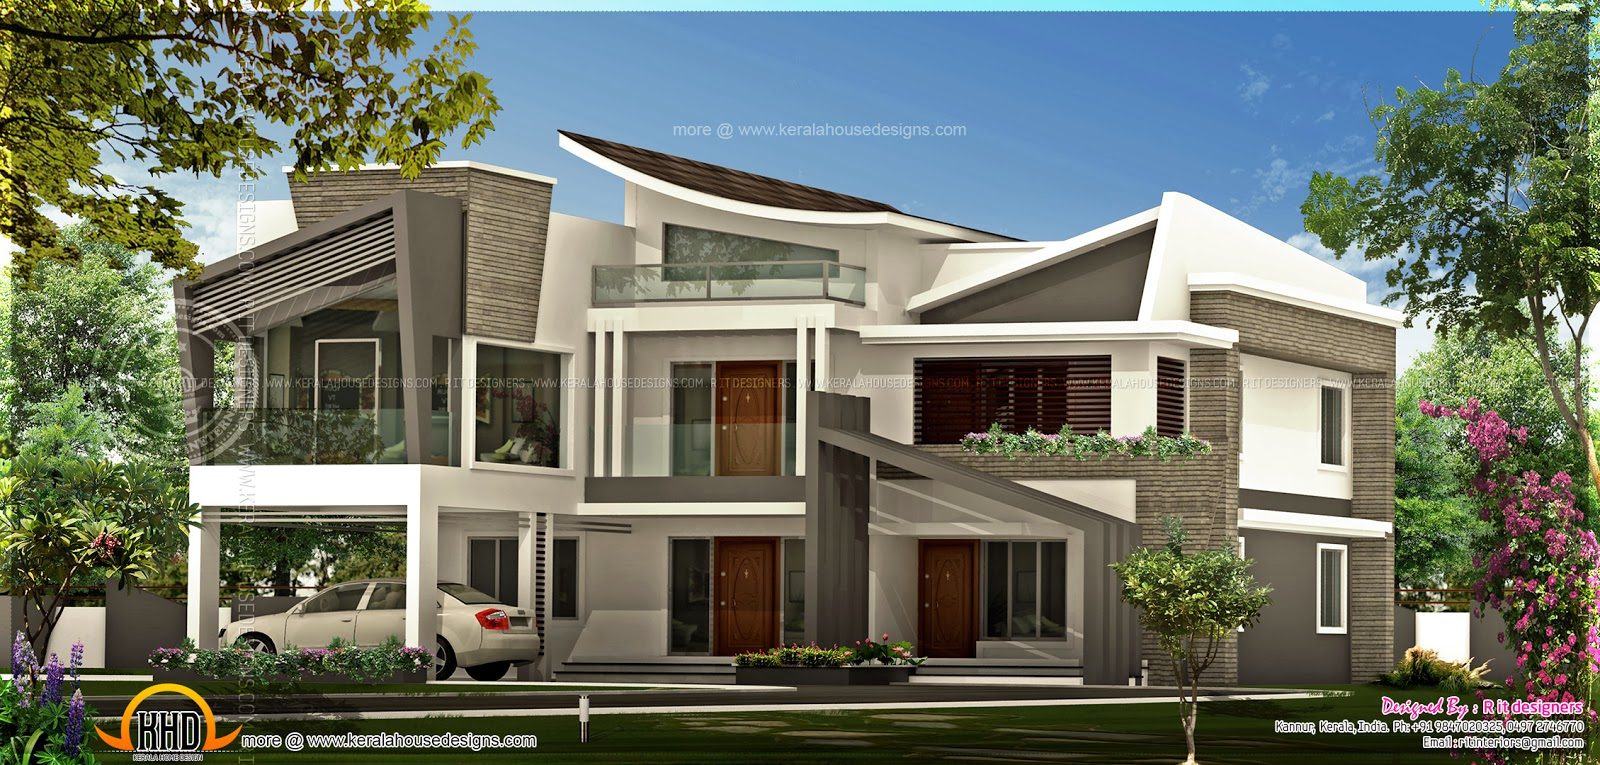 Top 19 photos ideas for unique modern houses home plans for Unique house plans